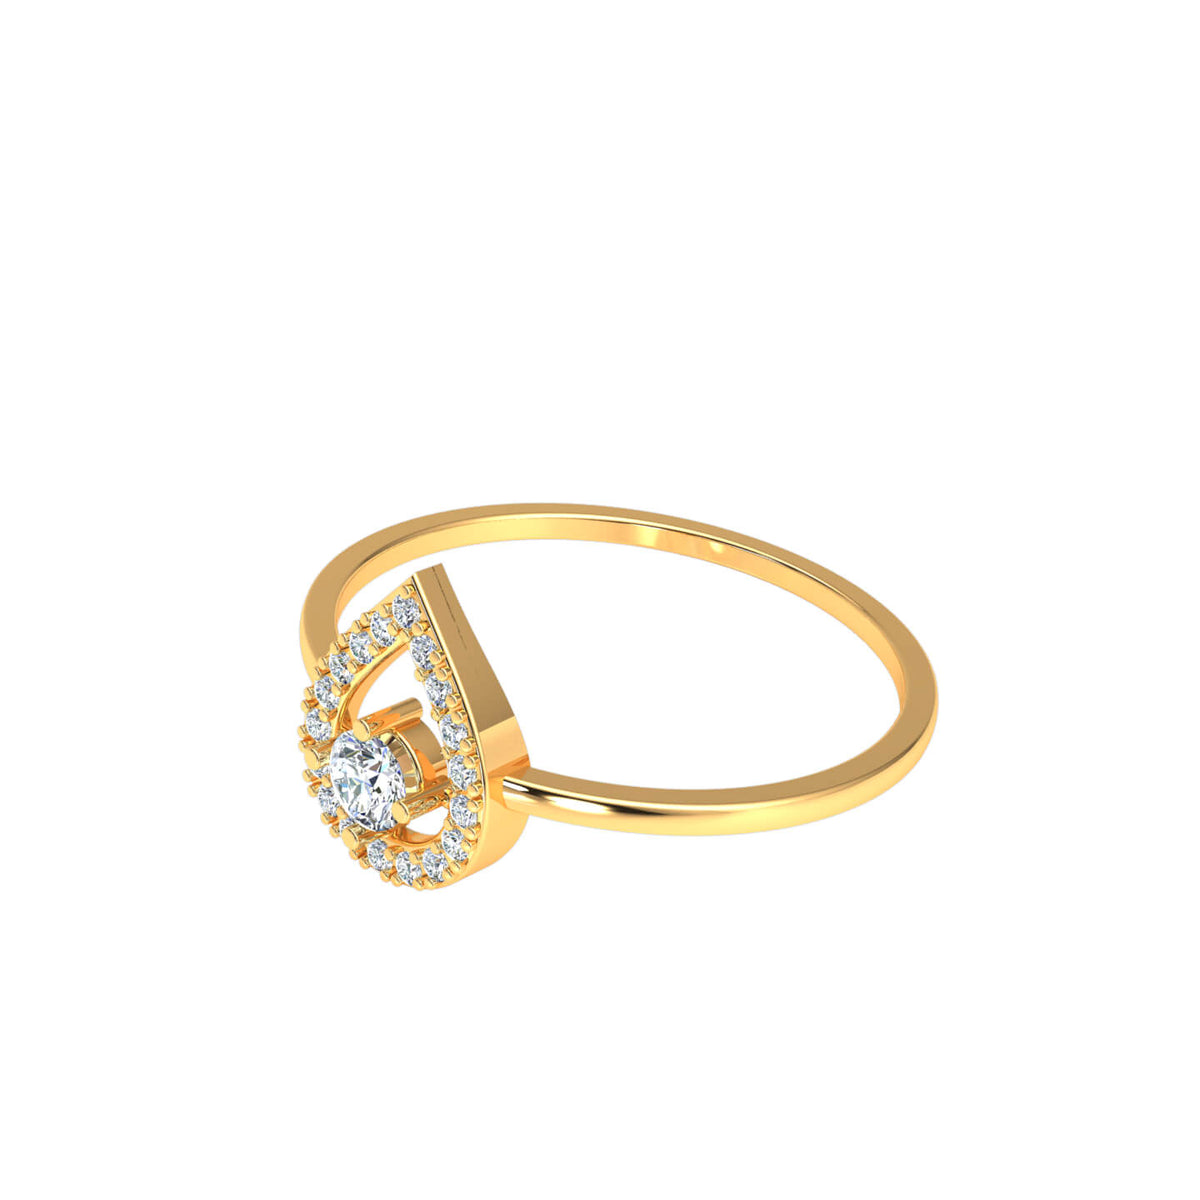 0.20 Ct Round FG VS Diamond Halo Solitaire Fancy Ring For Women 14k Gold